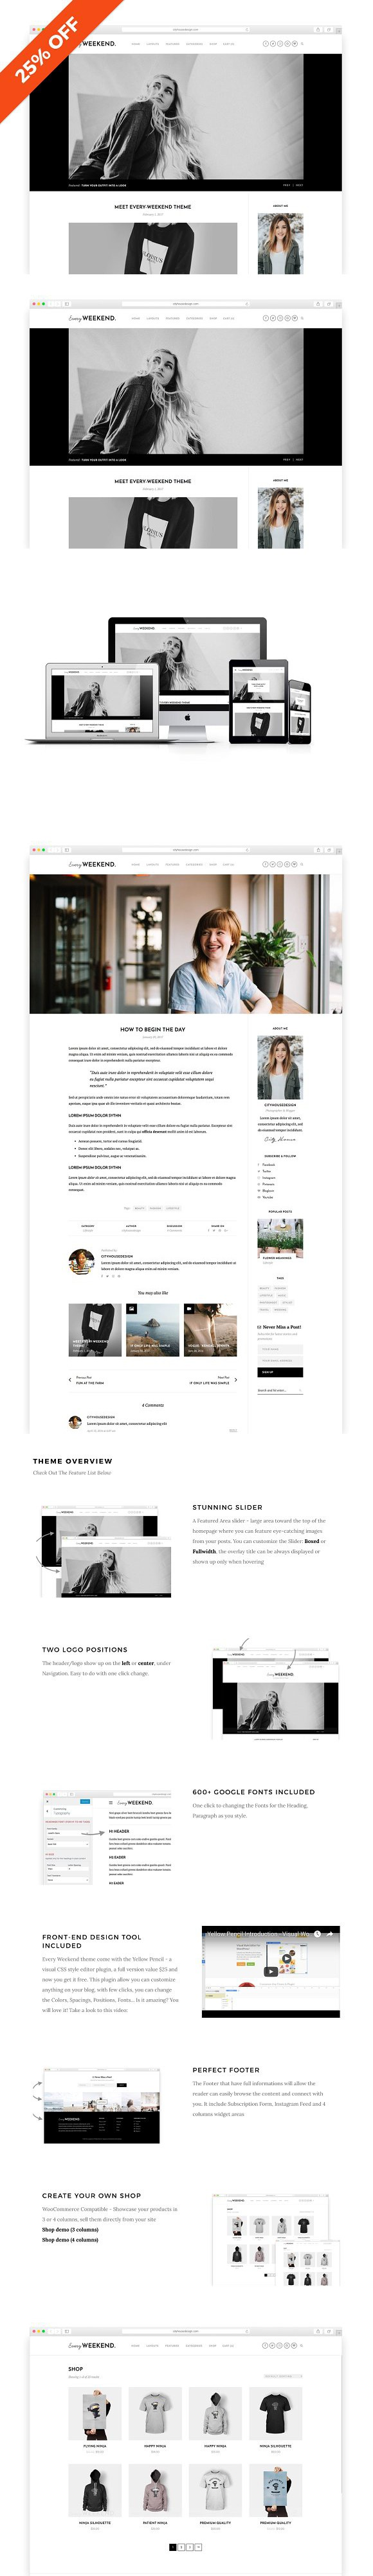 Every Weekend - A Blog & Shop Theme. WordPress Blog Themes